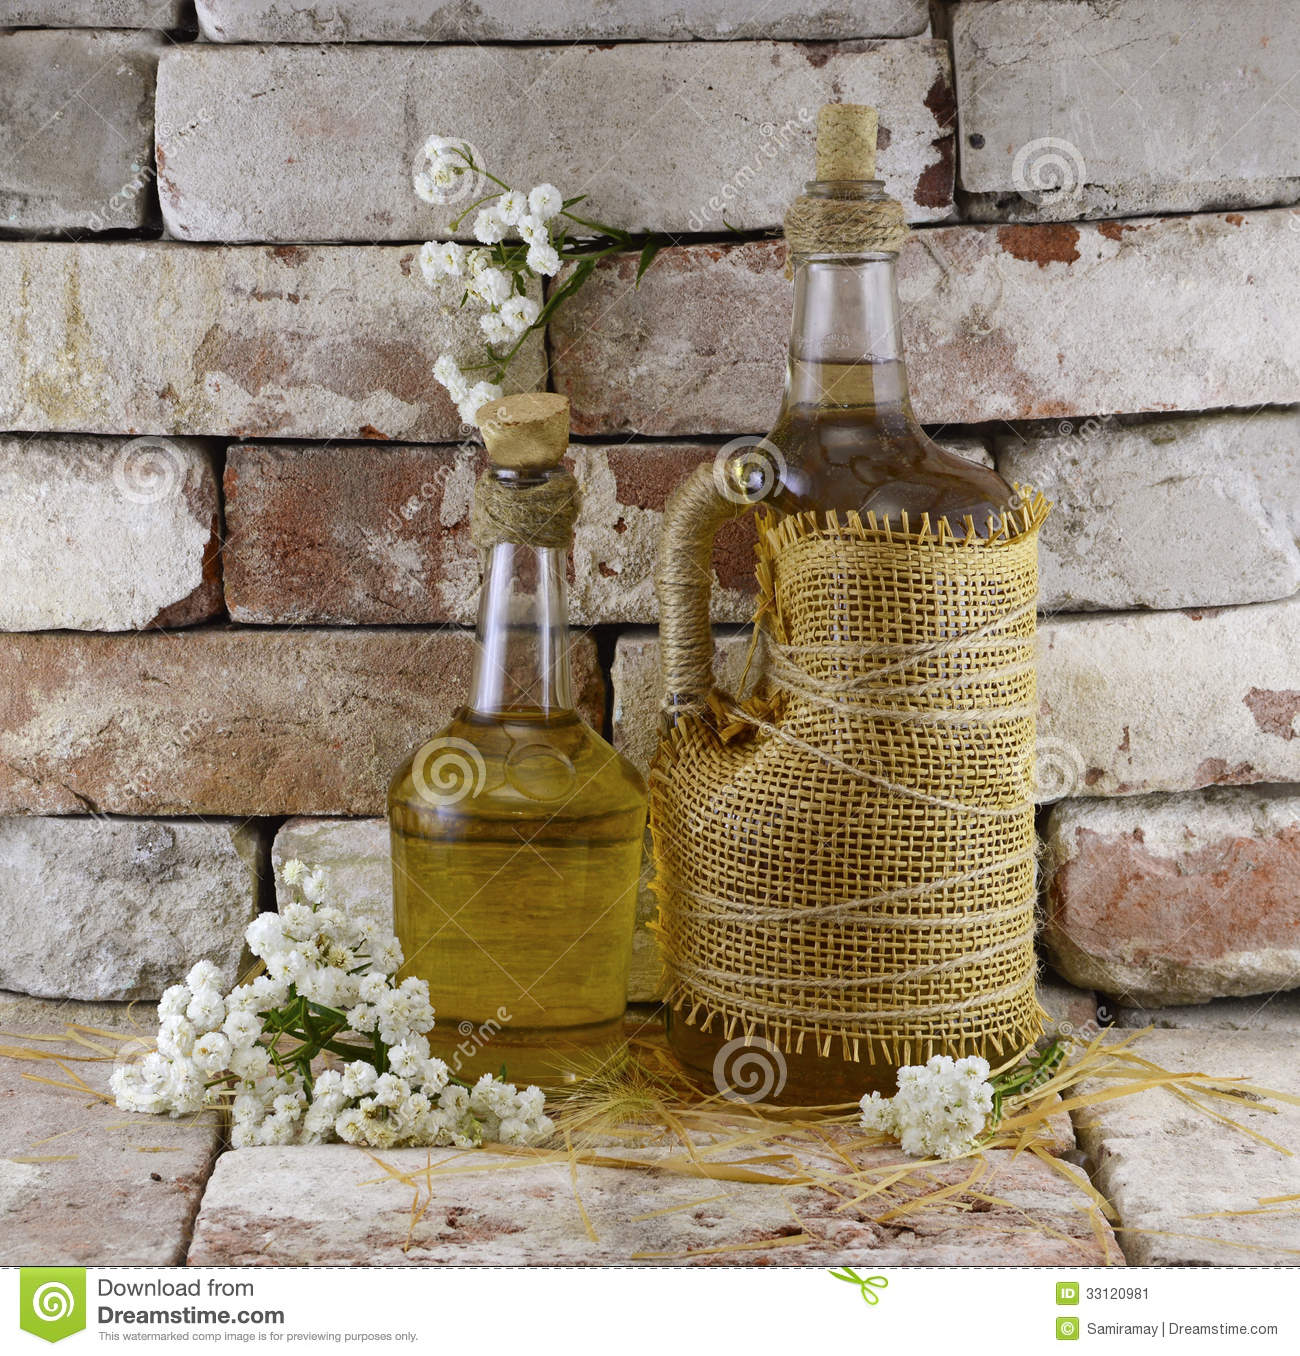 Two bottles of cider with white flowers in cellar background.